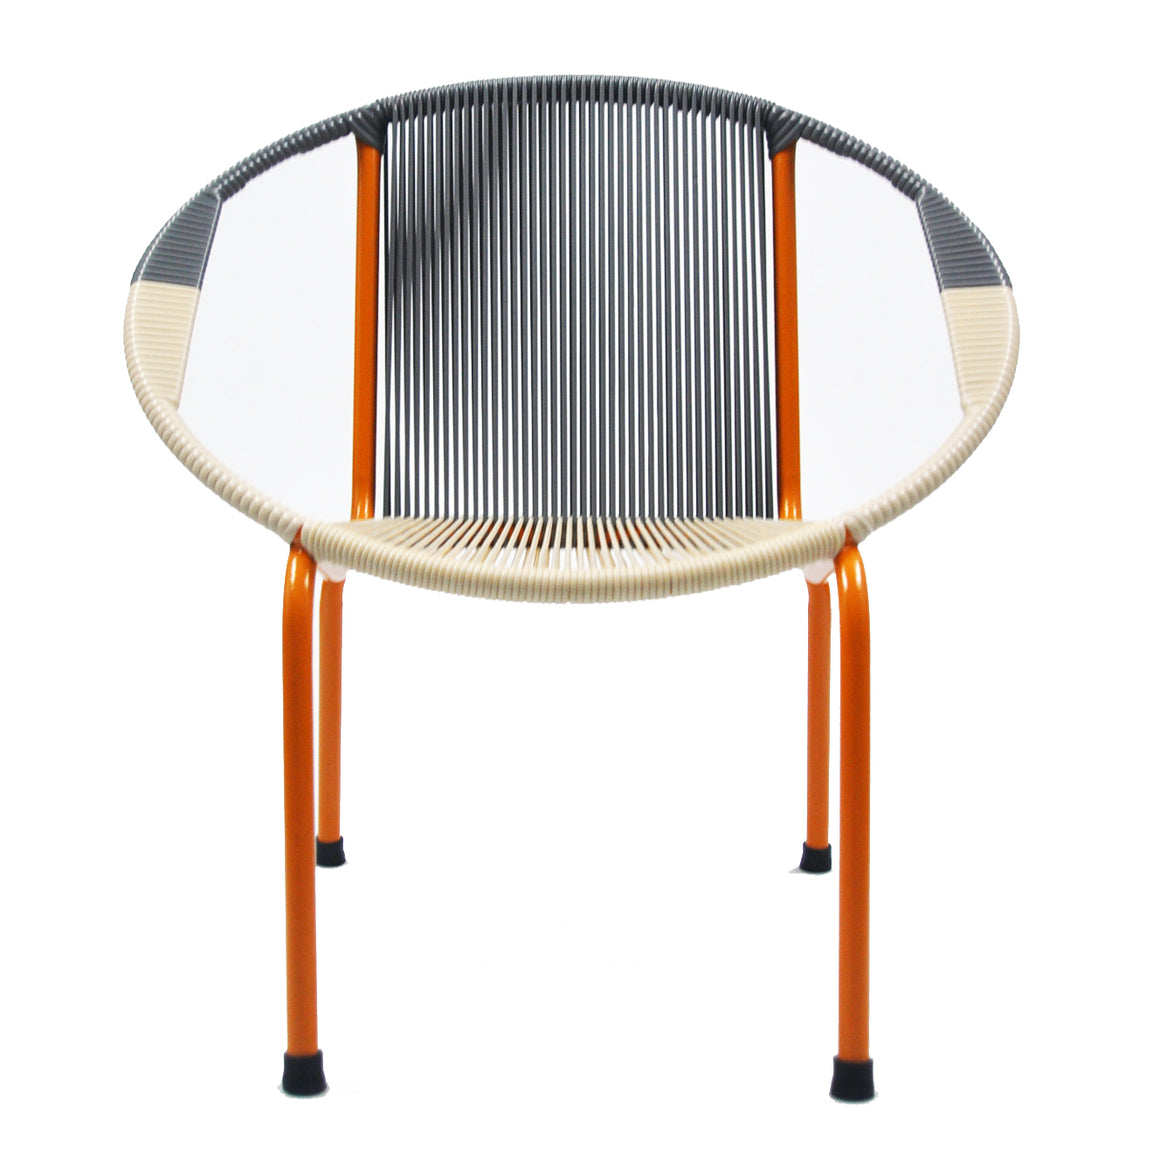 Merdeka Chair Lounge Tropicalia 2019 (MIX - Beige + Grey02)